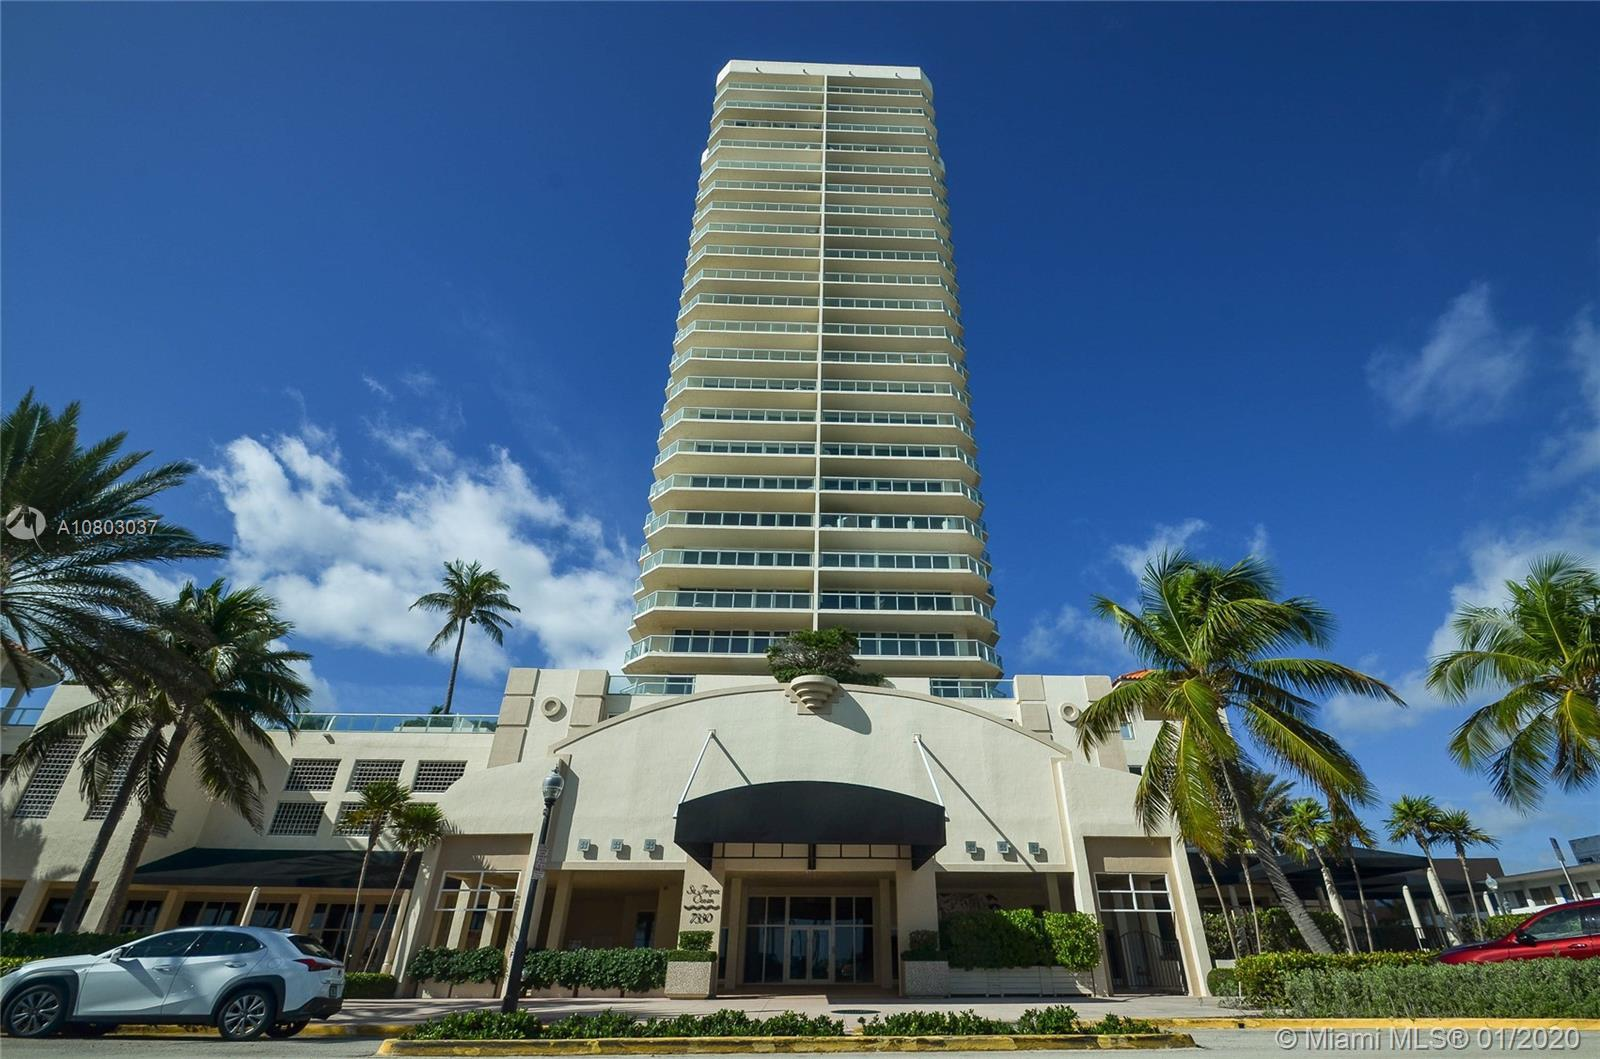 Oceanfront S.E. Corner PH with amazing views of Direct Ocean and Miami Skyline at perfect price! Thi